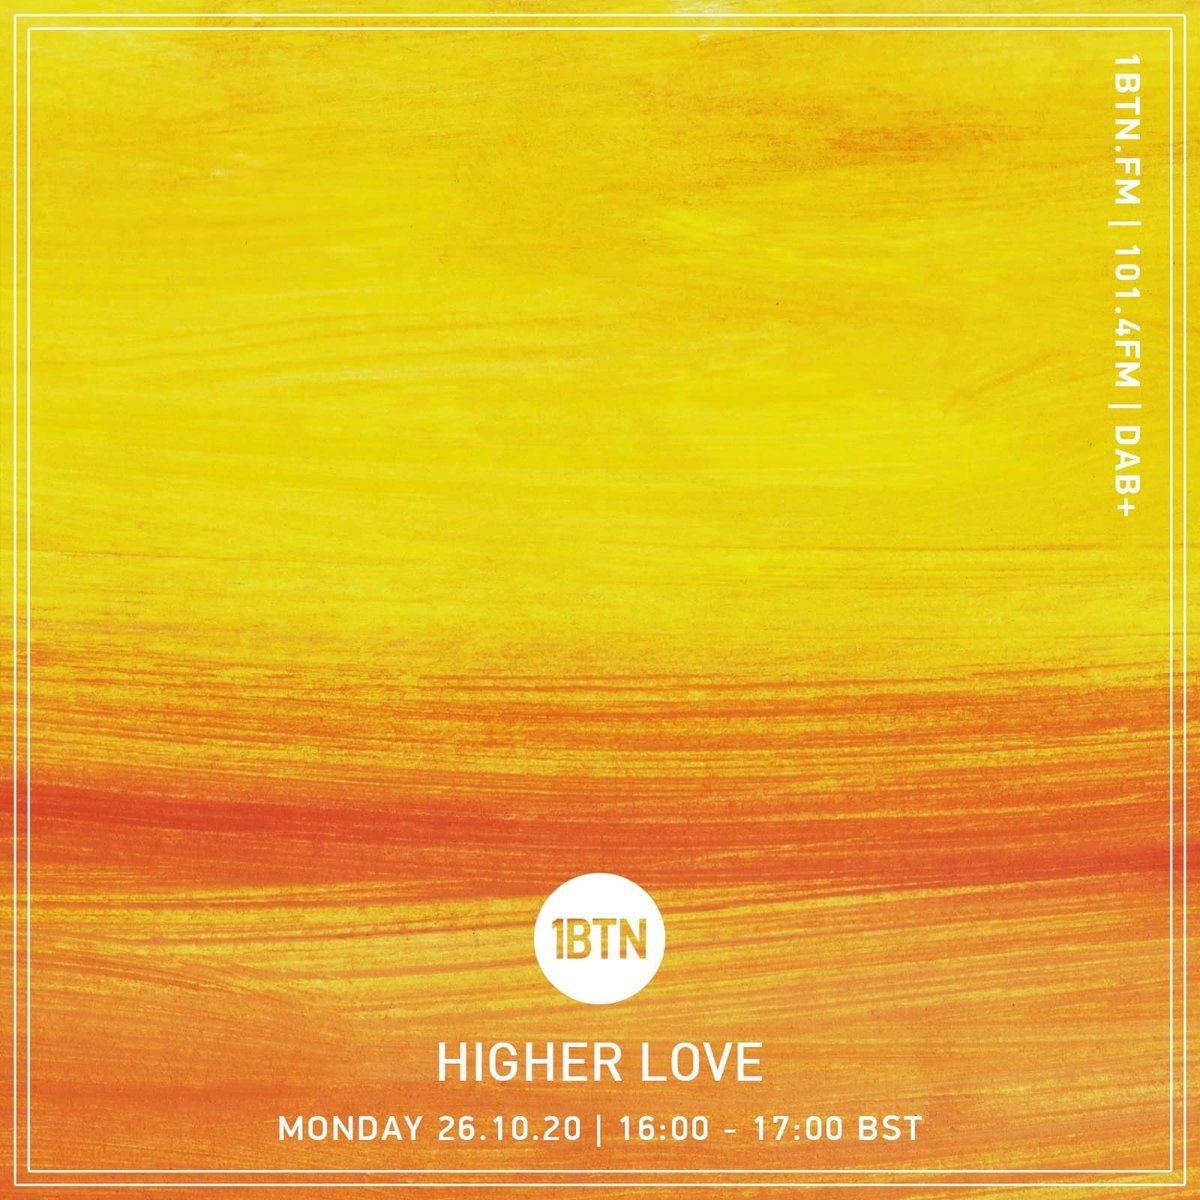 Annnnnnd relax. Sunset sounds for an hour on the latest Higher Love show. Today from 4pm on the magnificent @1btnradio  #balearic #electronica #ambient #downtempo #chillout #lounge #sunset https://t.co/LjlQzkvFcO